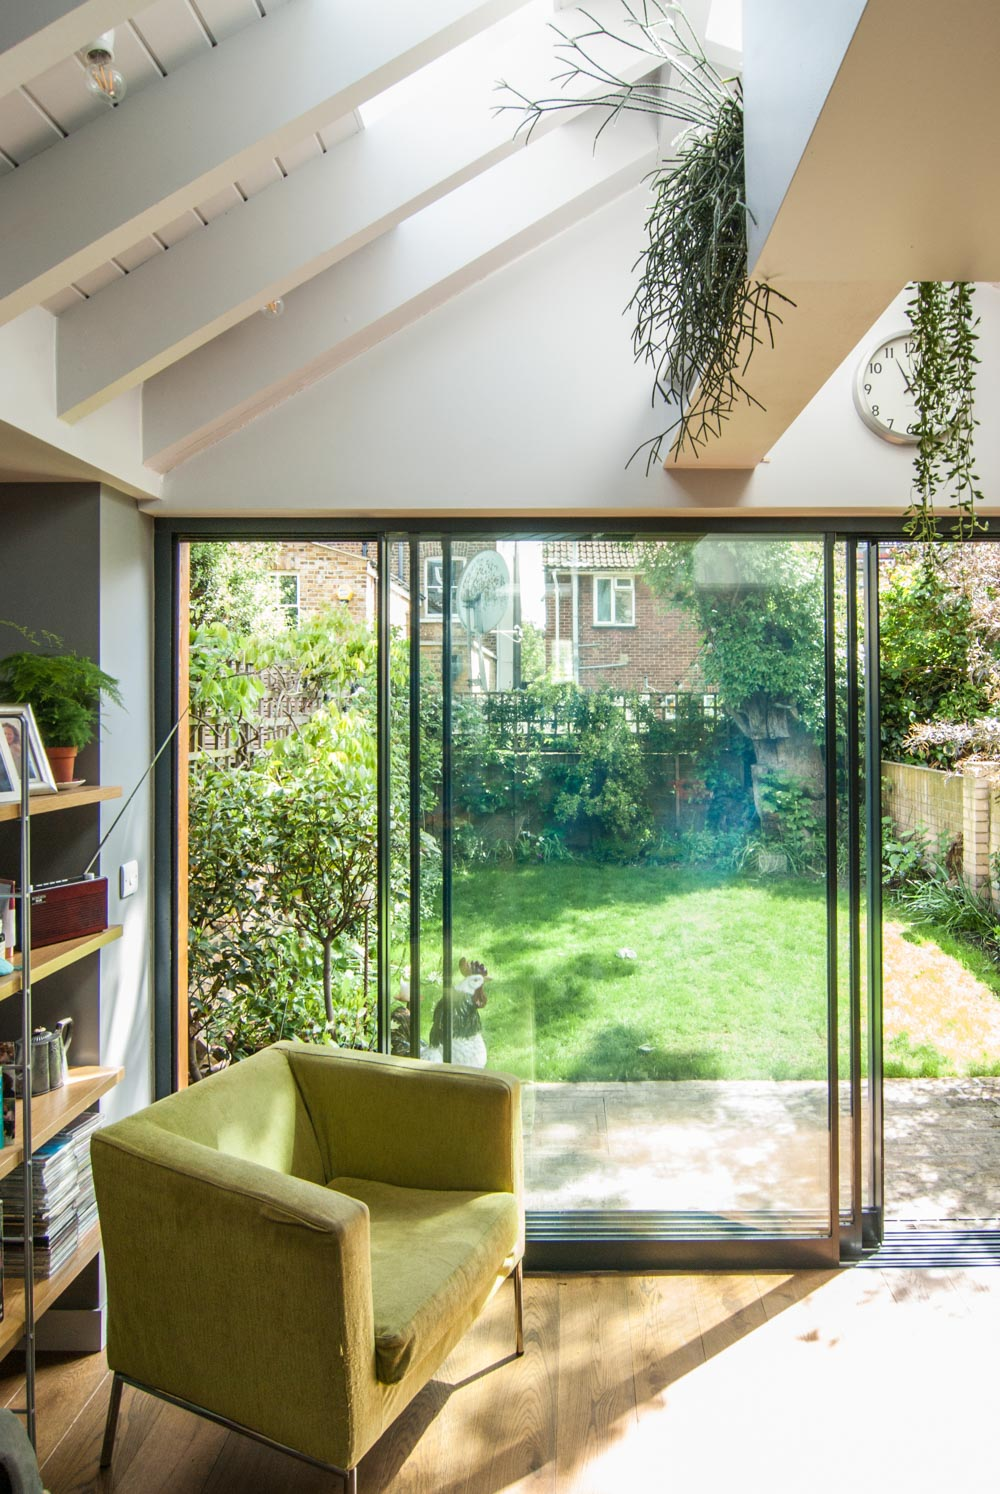 Beautiful view of the reading area against sliding doors leading onto the garden.